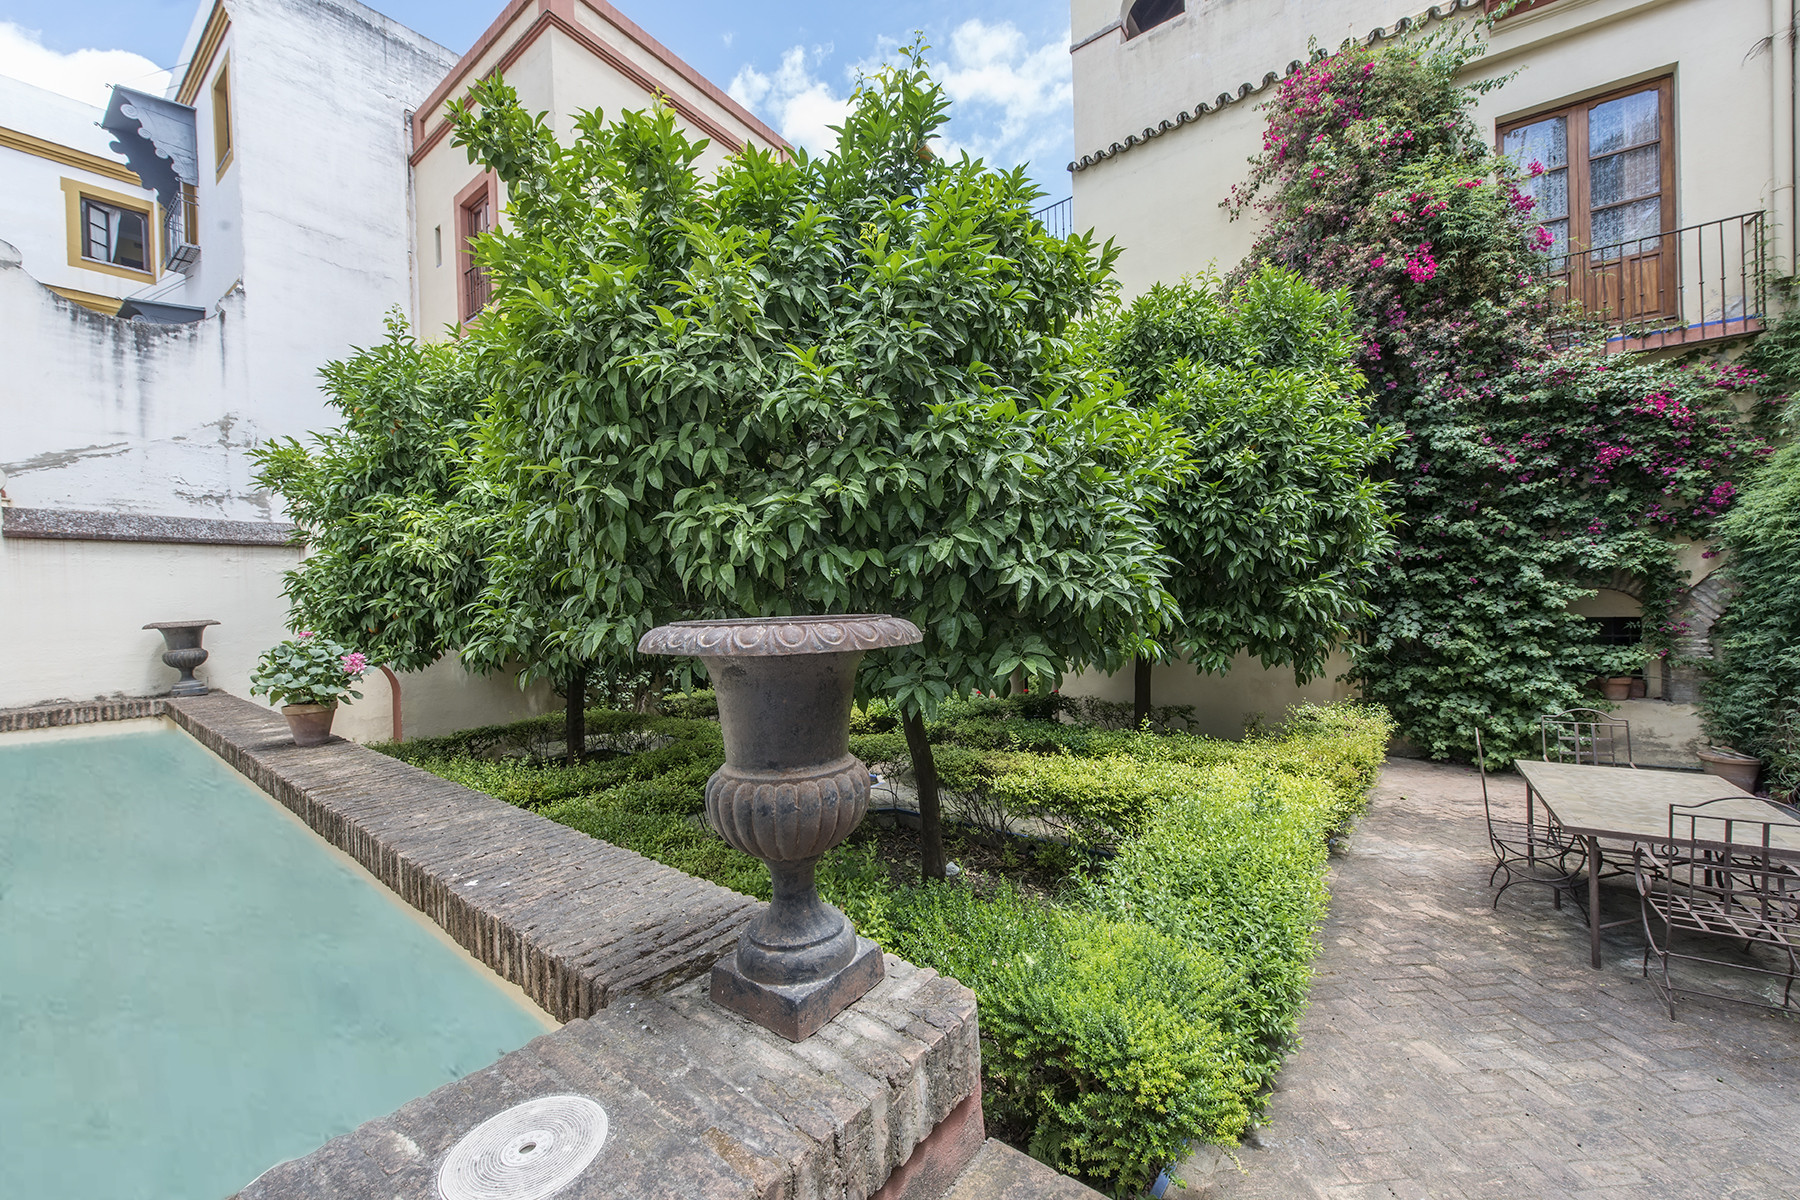 Single Family Homes for Sale at 17th Century Sevillian residential palace with orange trees and swimmingpool Sevilla, Andalucia Spain